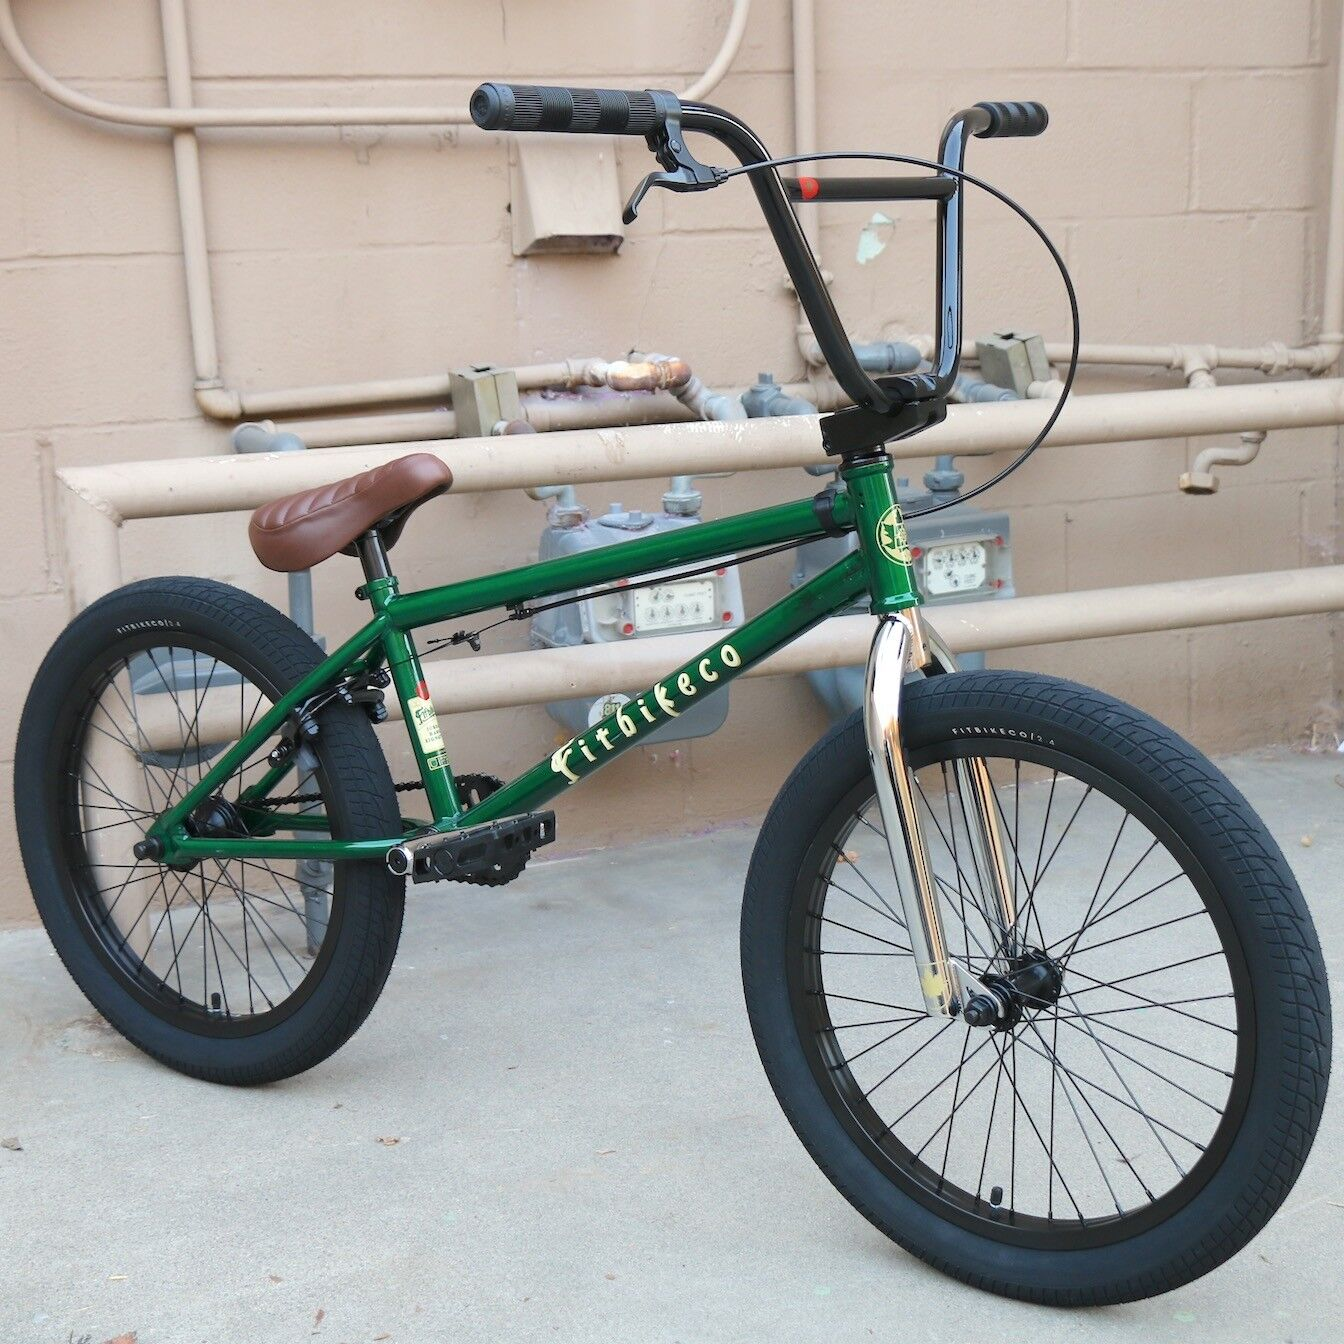 2019 FIT BIKE CO BMX HANGO 20  BICYCLE TRANS GREEN SUNDAY CULT PRIMO KINK HARO